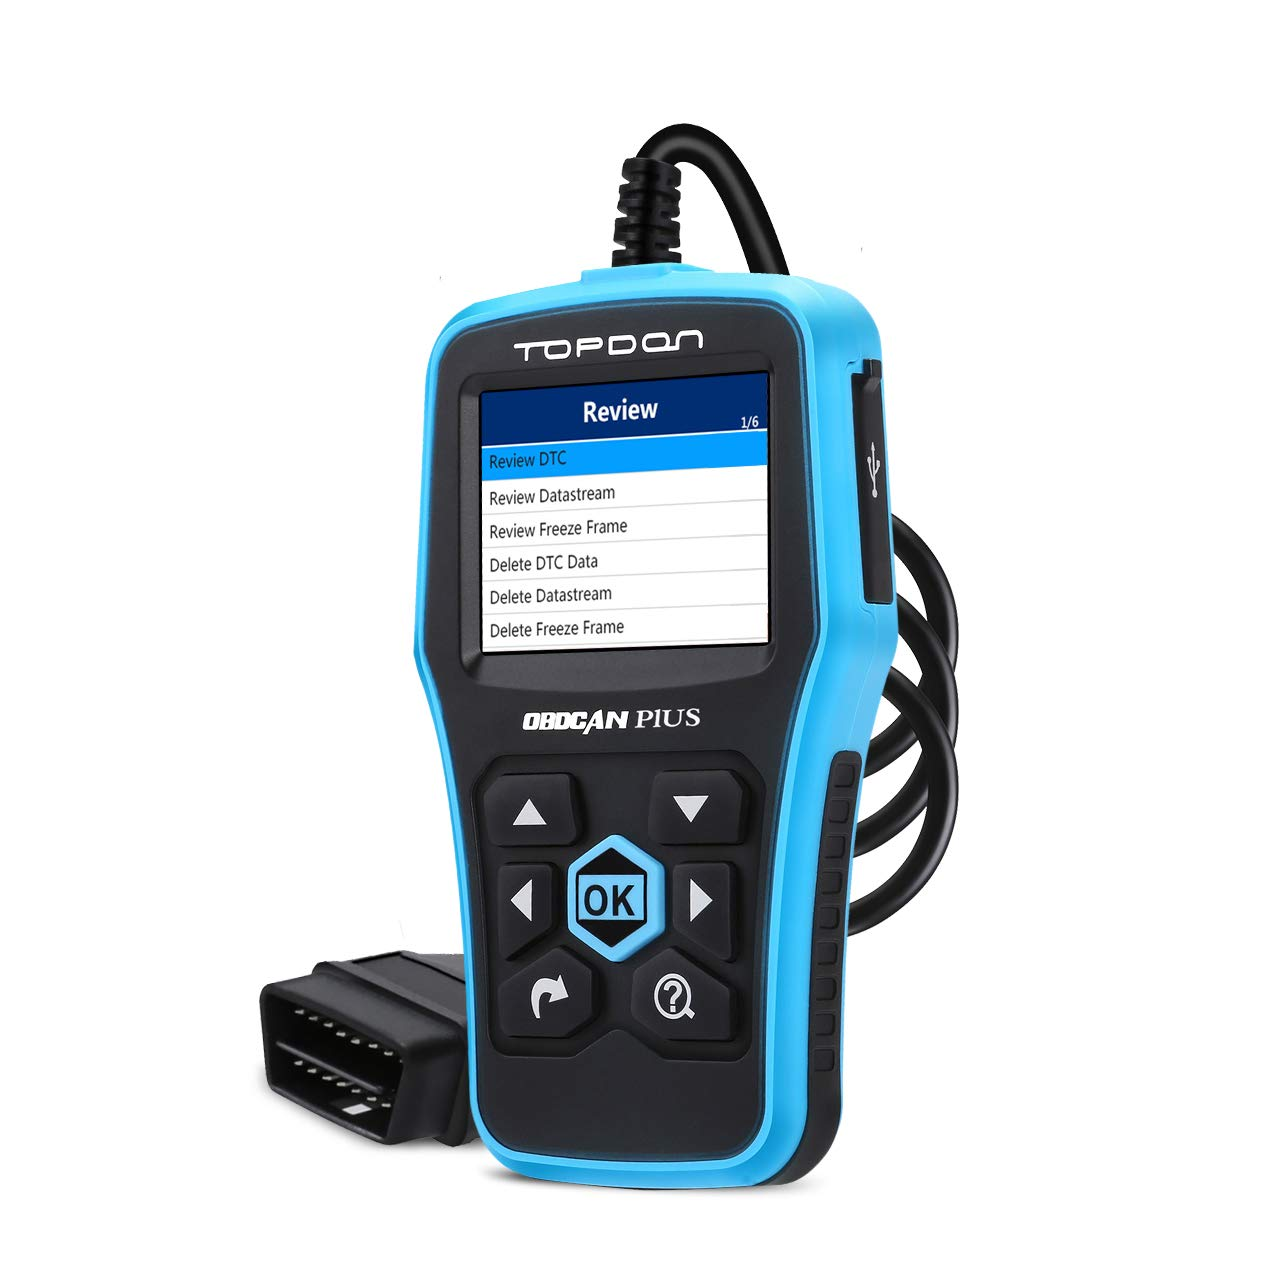 TT TOPDON OBD2 Scanner - CAN Car Code Reader, PLUS2.0 Professional Engine Fault Diagnostic Scanner with DTC Library to Turn Off CEL, Pass Smog Test for Home and Autoshop